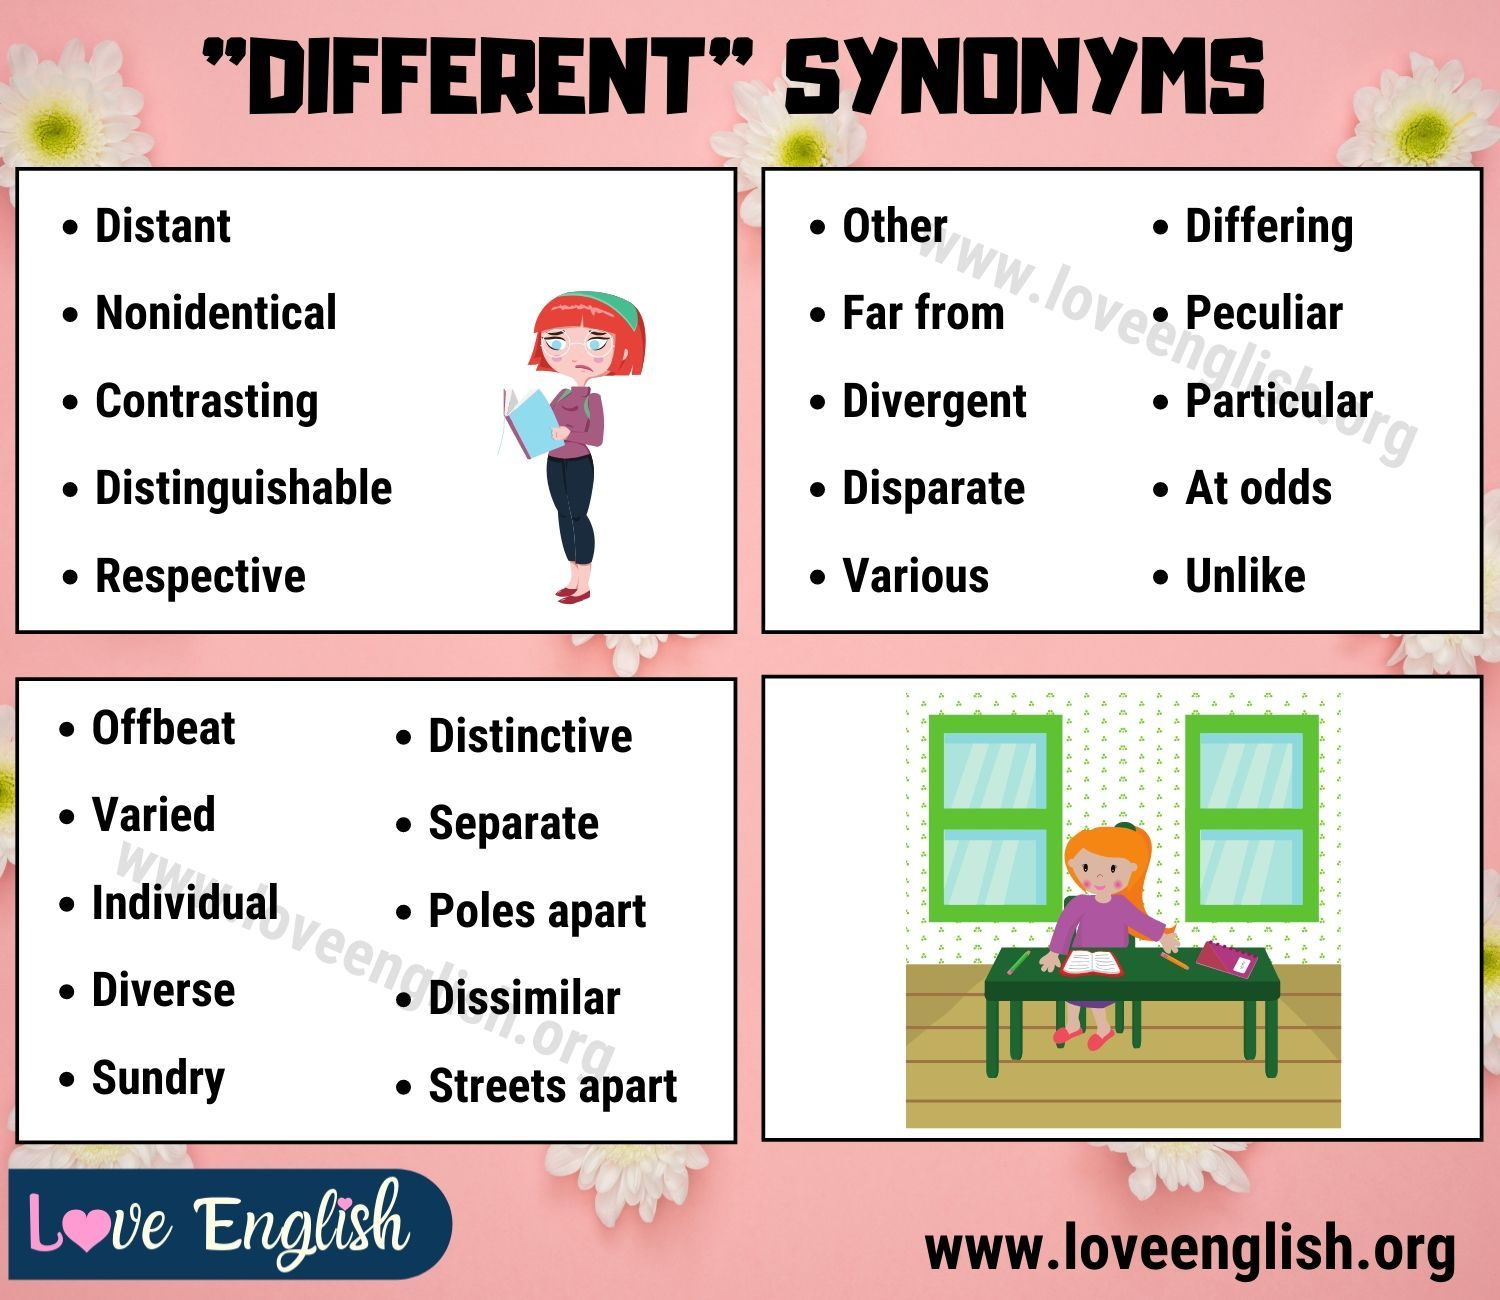 Different Synonym 25 Common Synonyms For Different In English Love English English Love Words Synonym